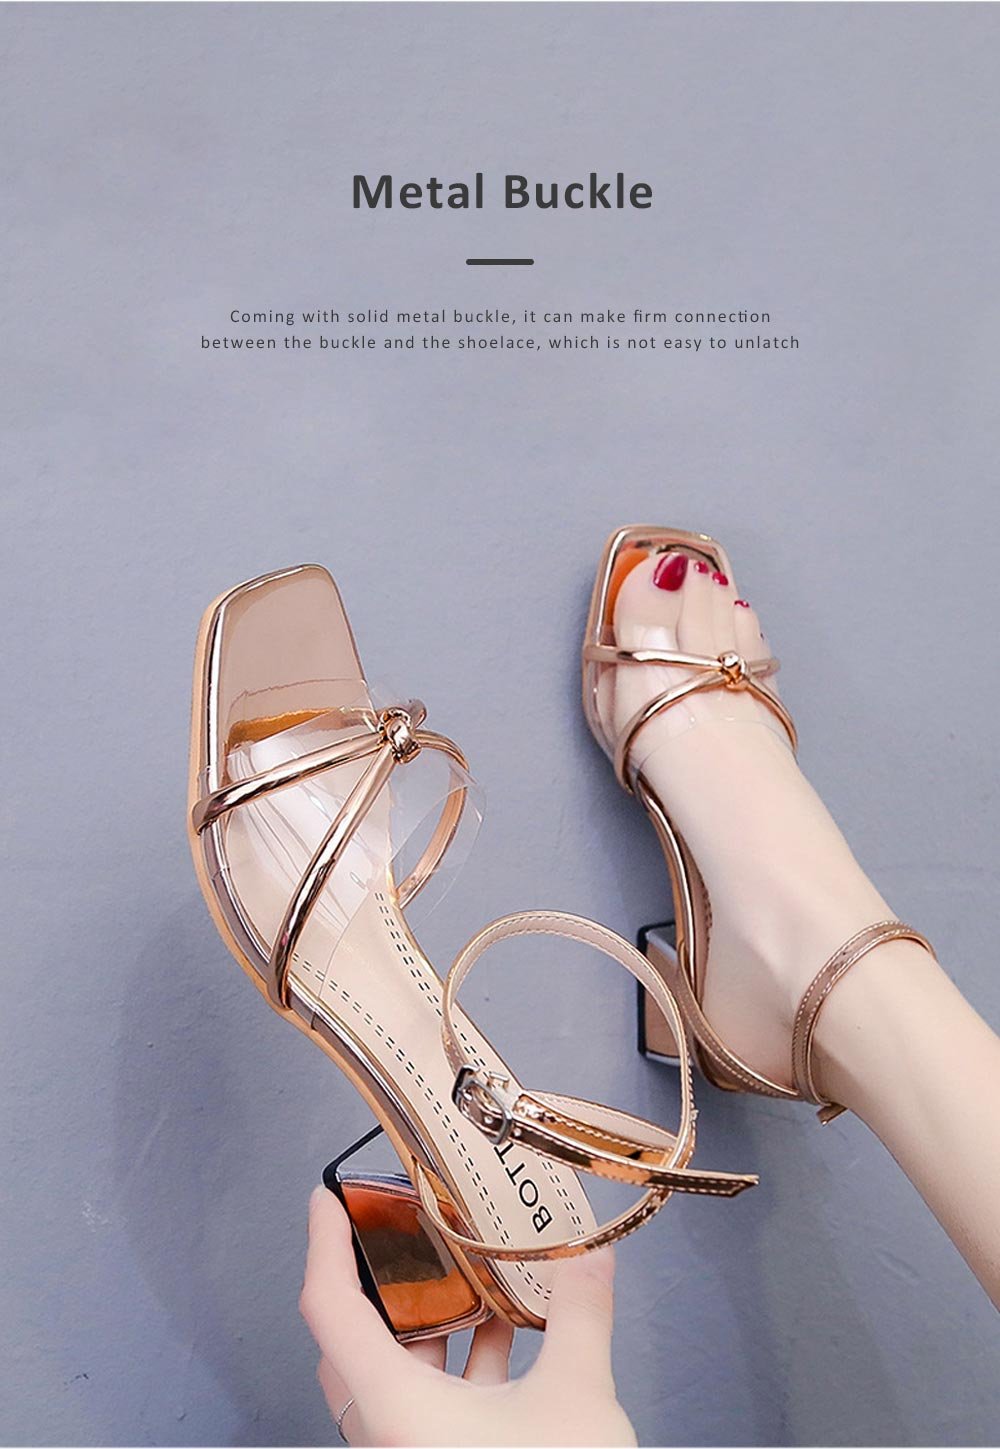 Medium-Height Thick Heel Scandal Transparent Fashion Cross Design PU Rubber Open Toe Shoe with Square Head For Women 4